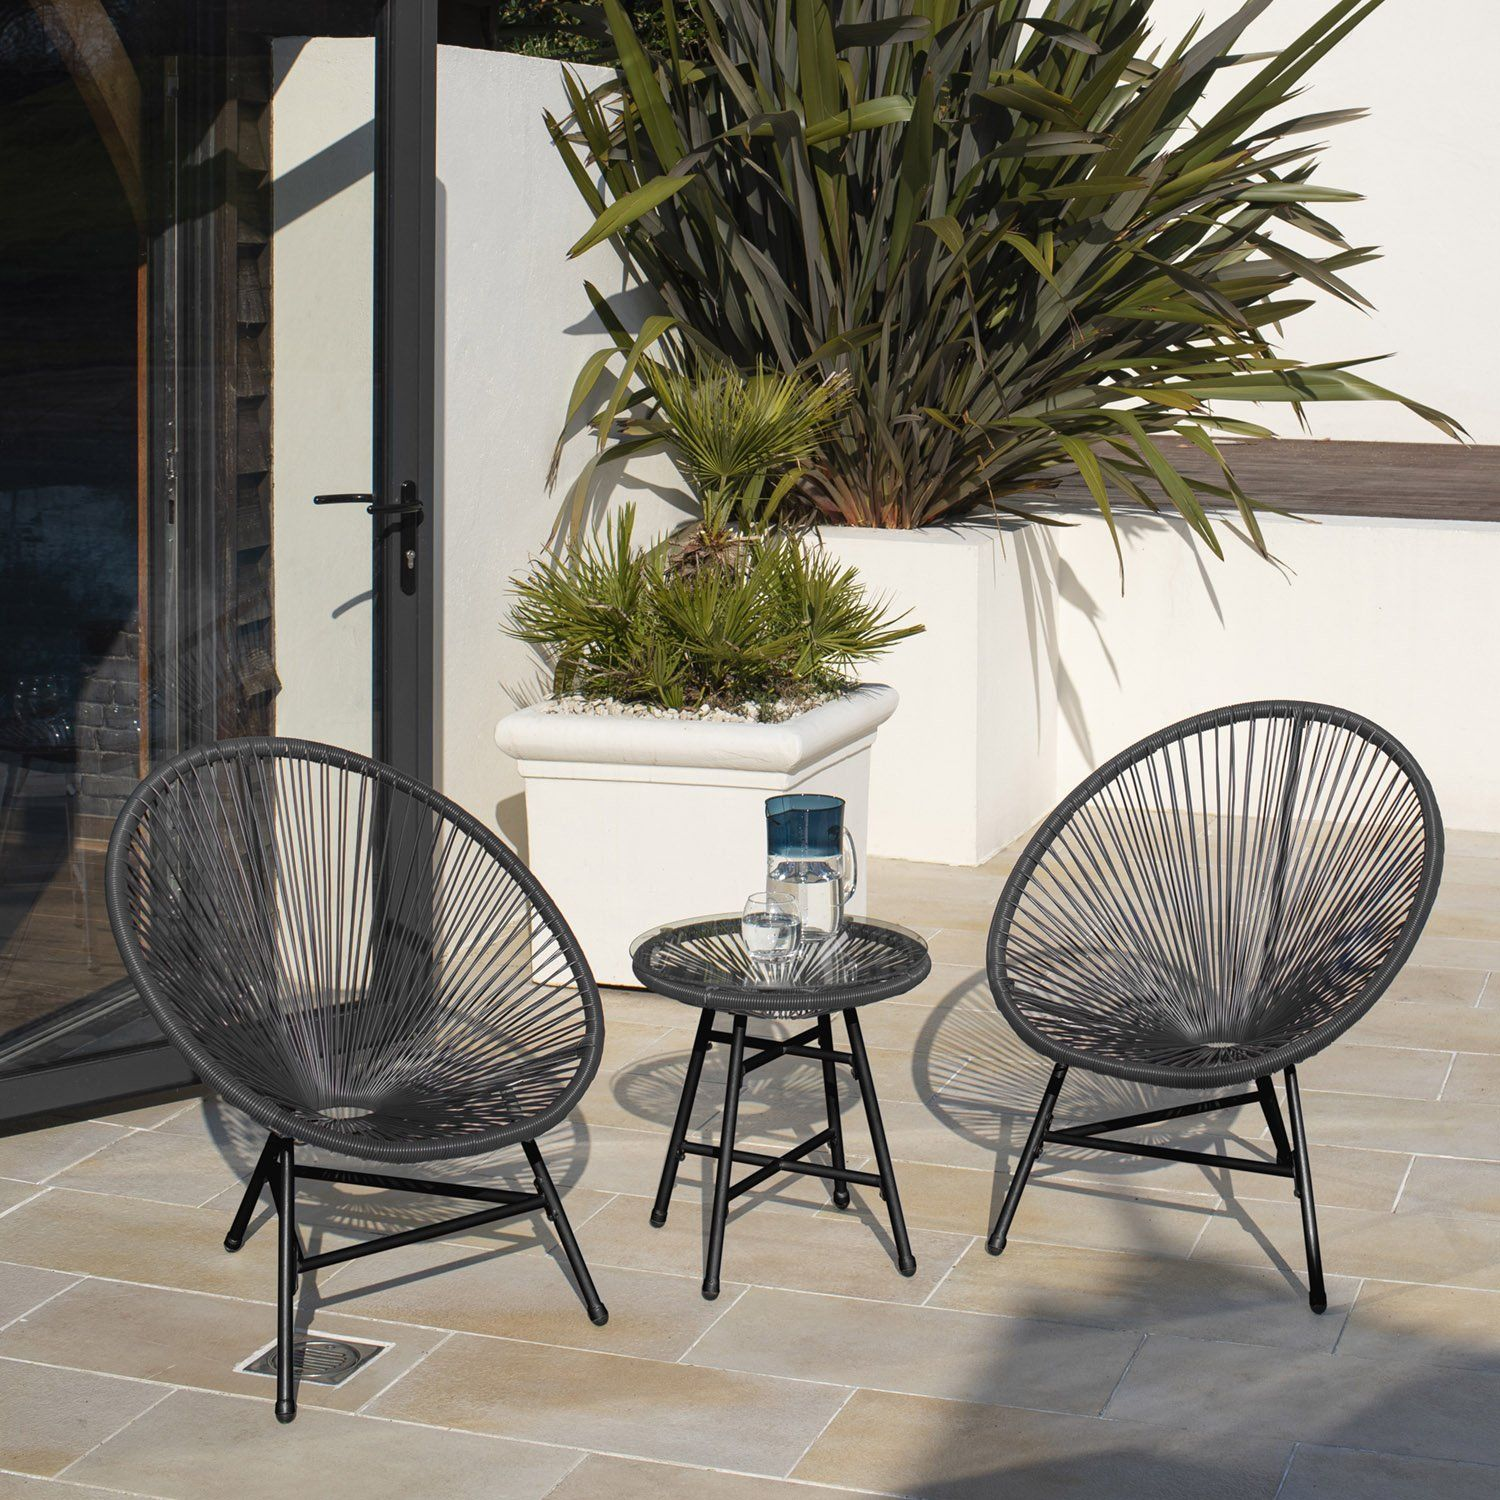 Hebe string bistro set - grey - Laura James